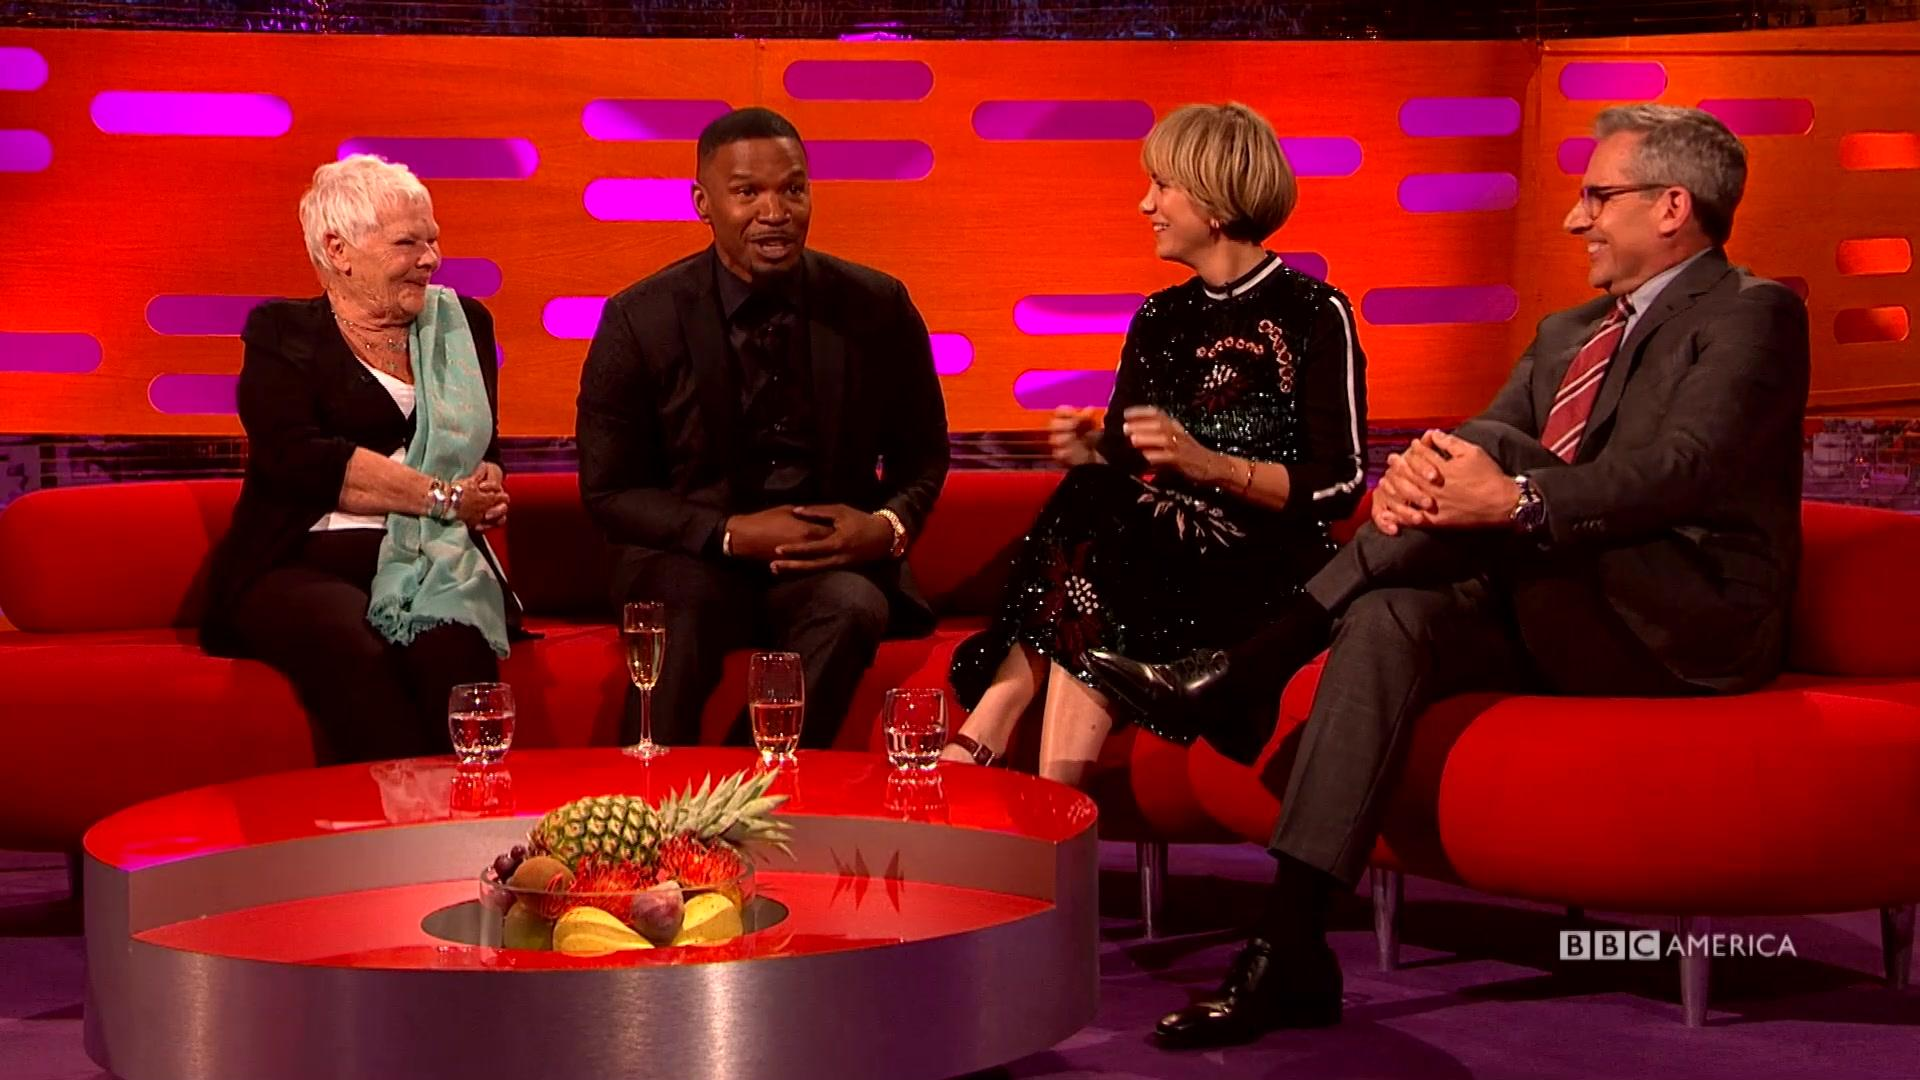 dating show bbc Goldie, amy, orlando and john talk dating fails - the graham norton show 2017: preview - bbc one.